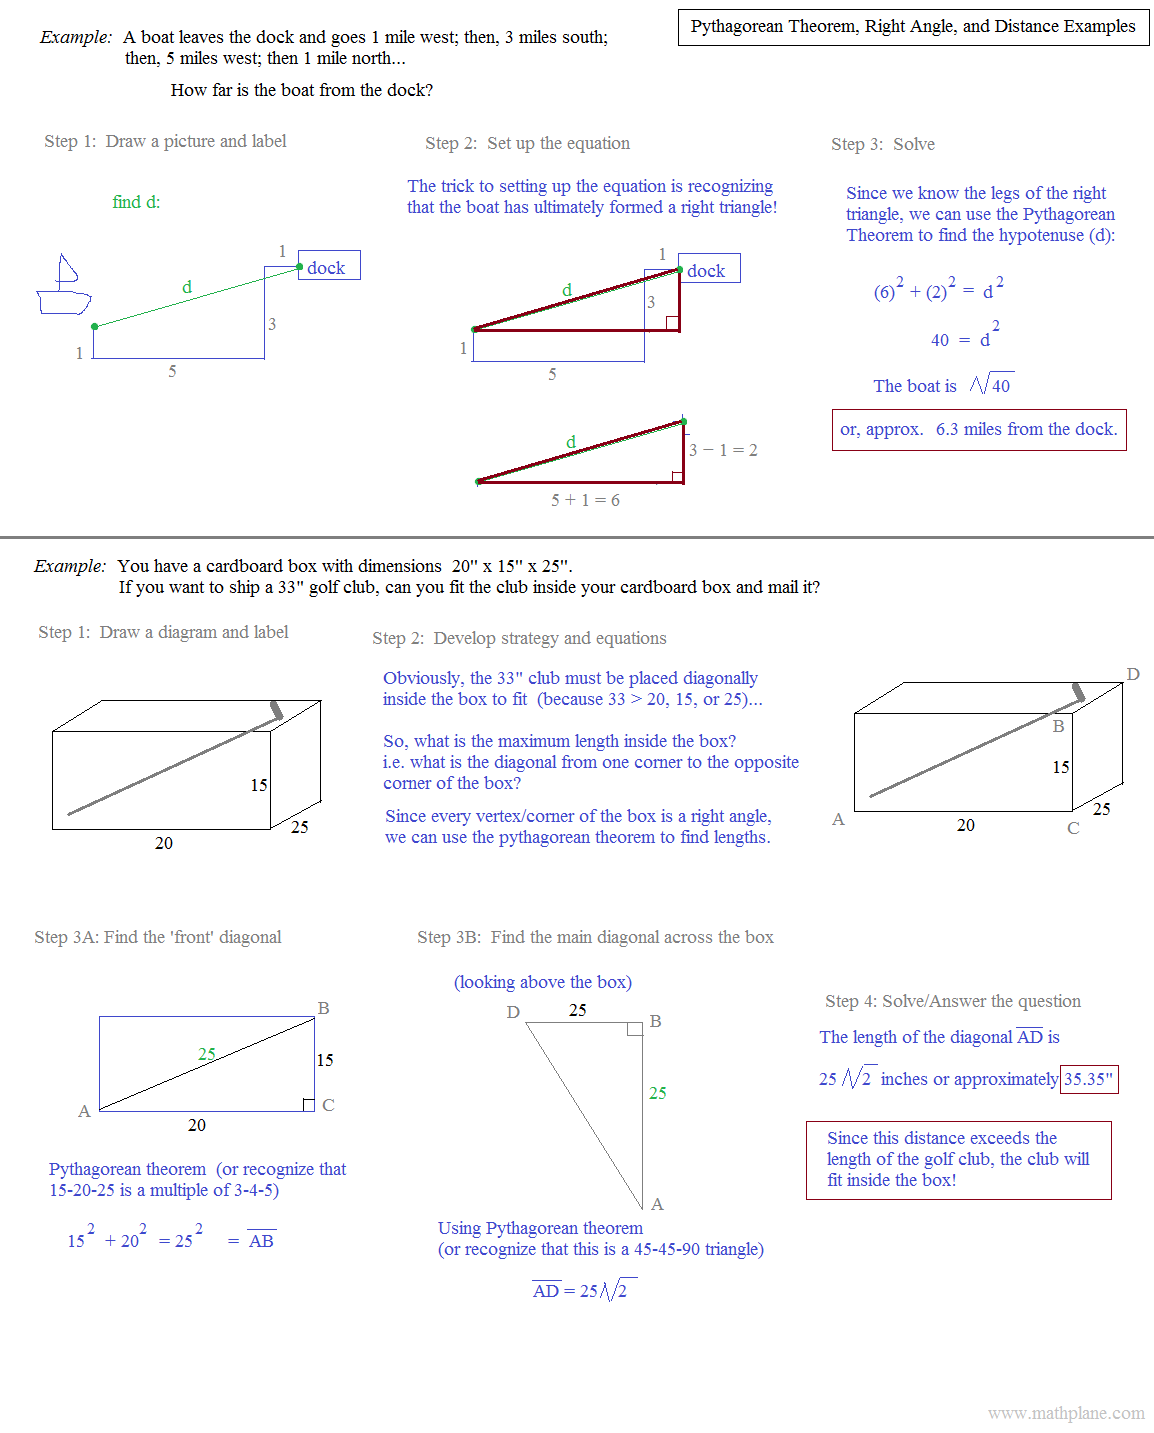 worksheet Pythagorean Theorem Puzzle Worksheet math plane pythagorean theorem distance and examples 2